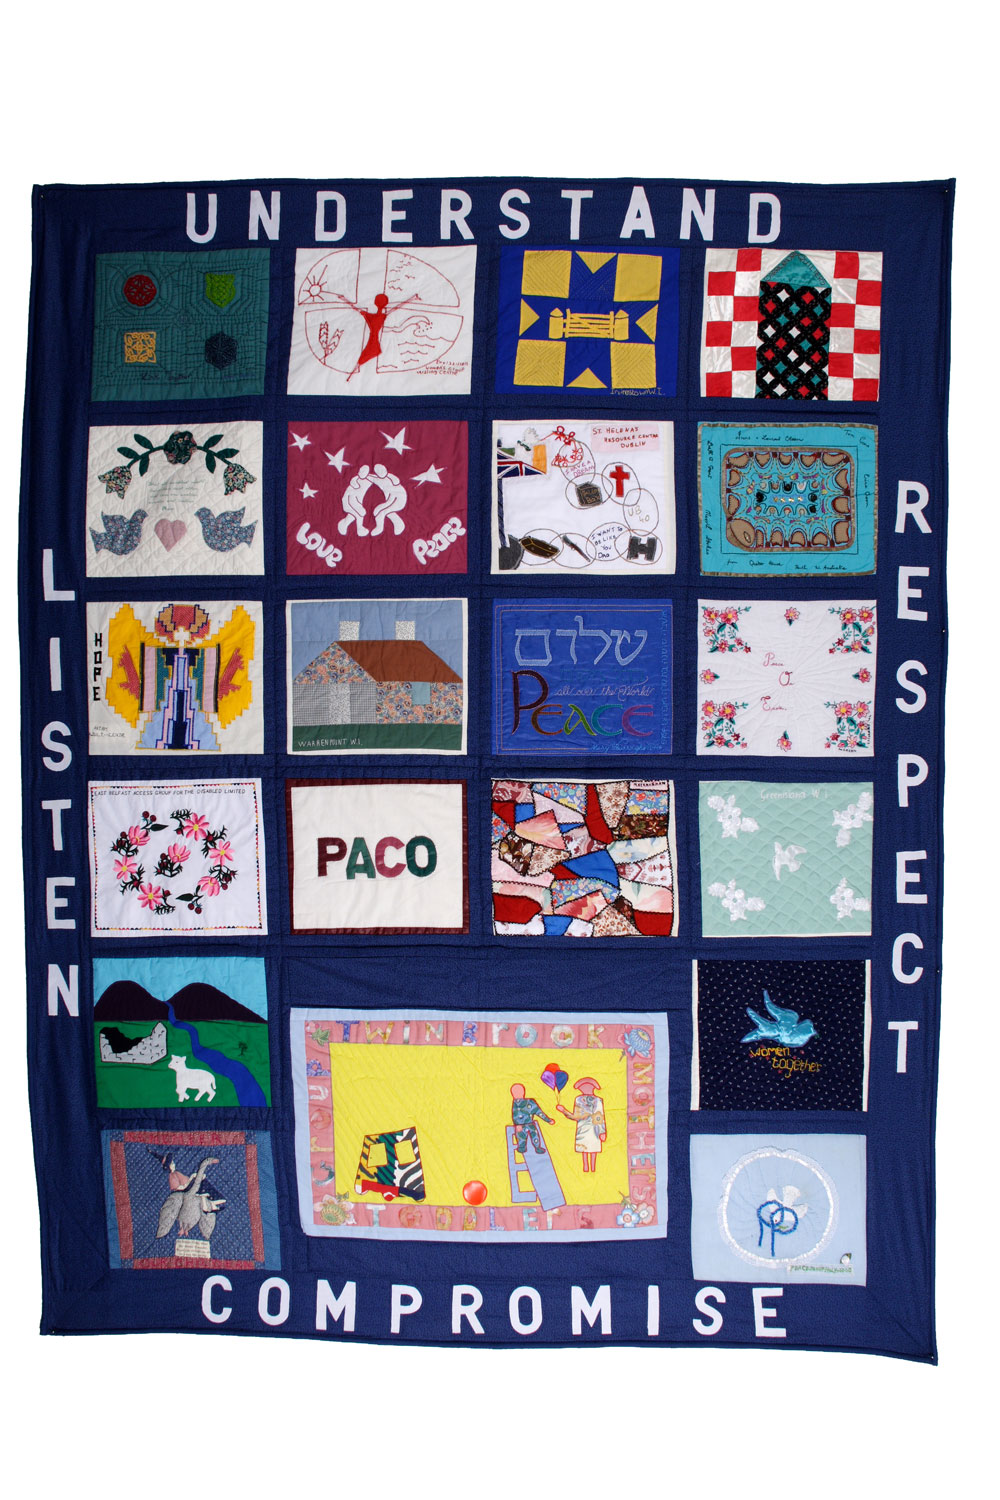 'Northern Ireland Reconciliation Quilt', by Women Together, Belfast. (Photo: Colin Peck)